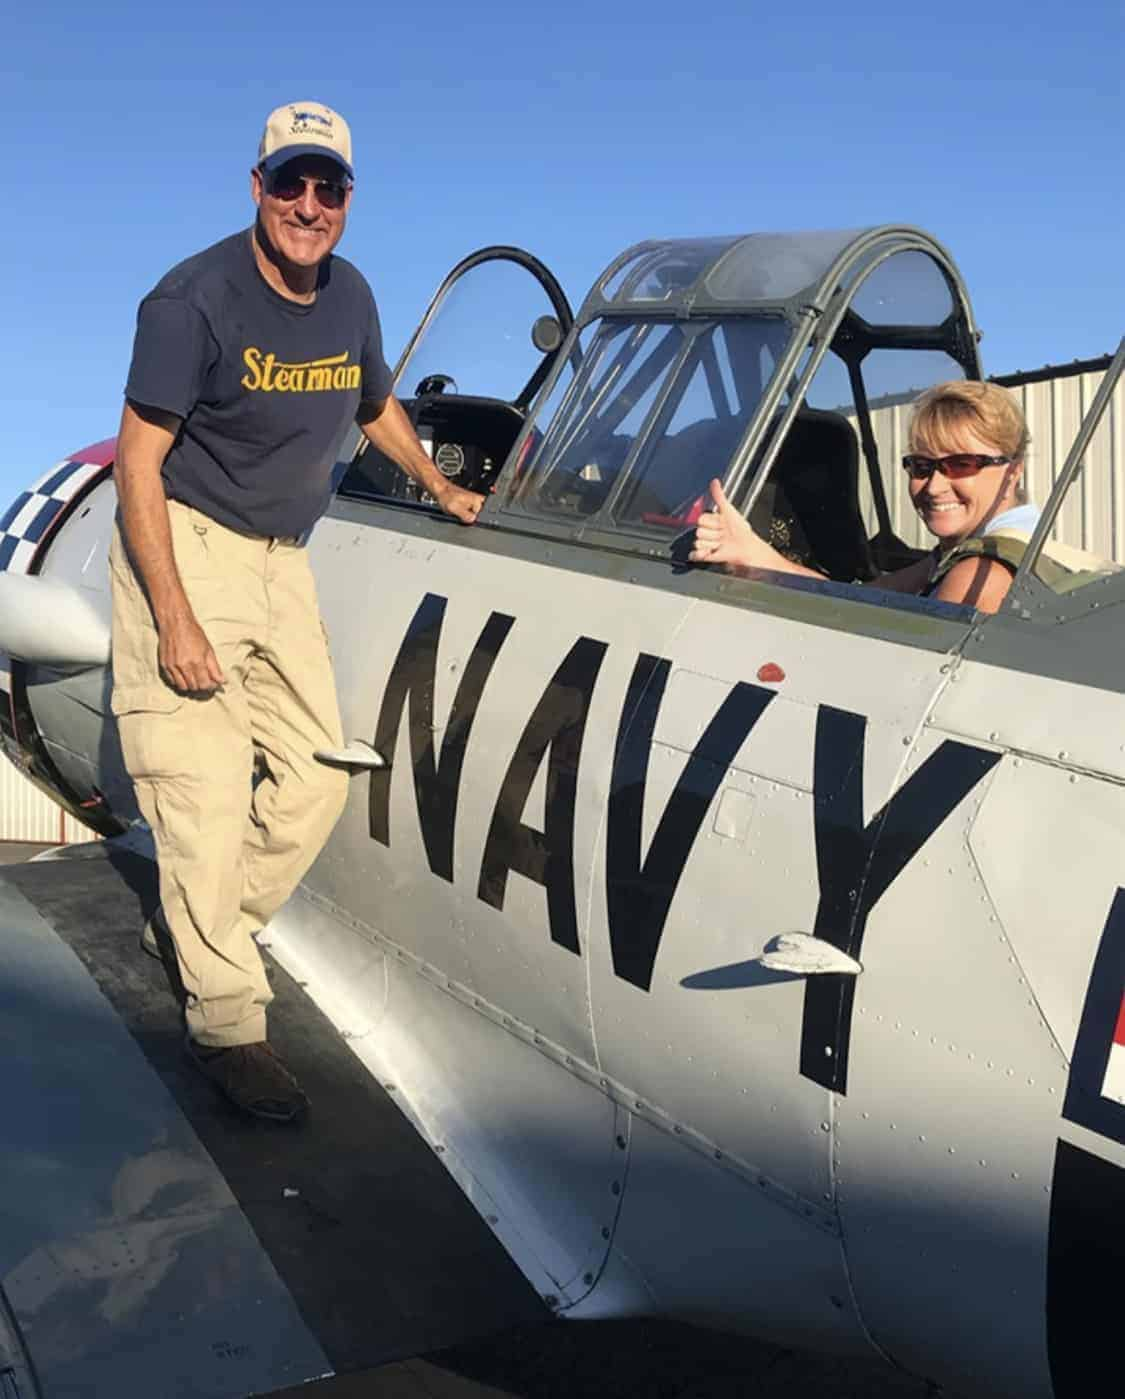 Pilot David Brown with his new T6 Texan Warbird airplane